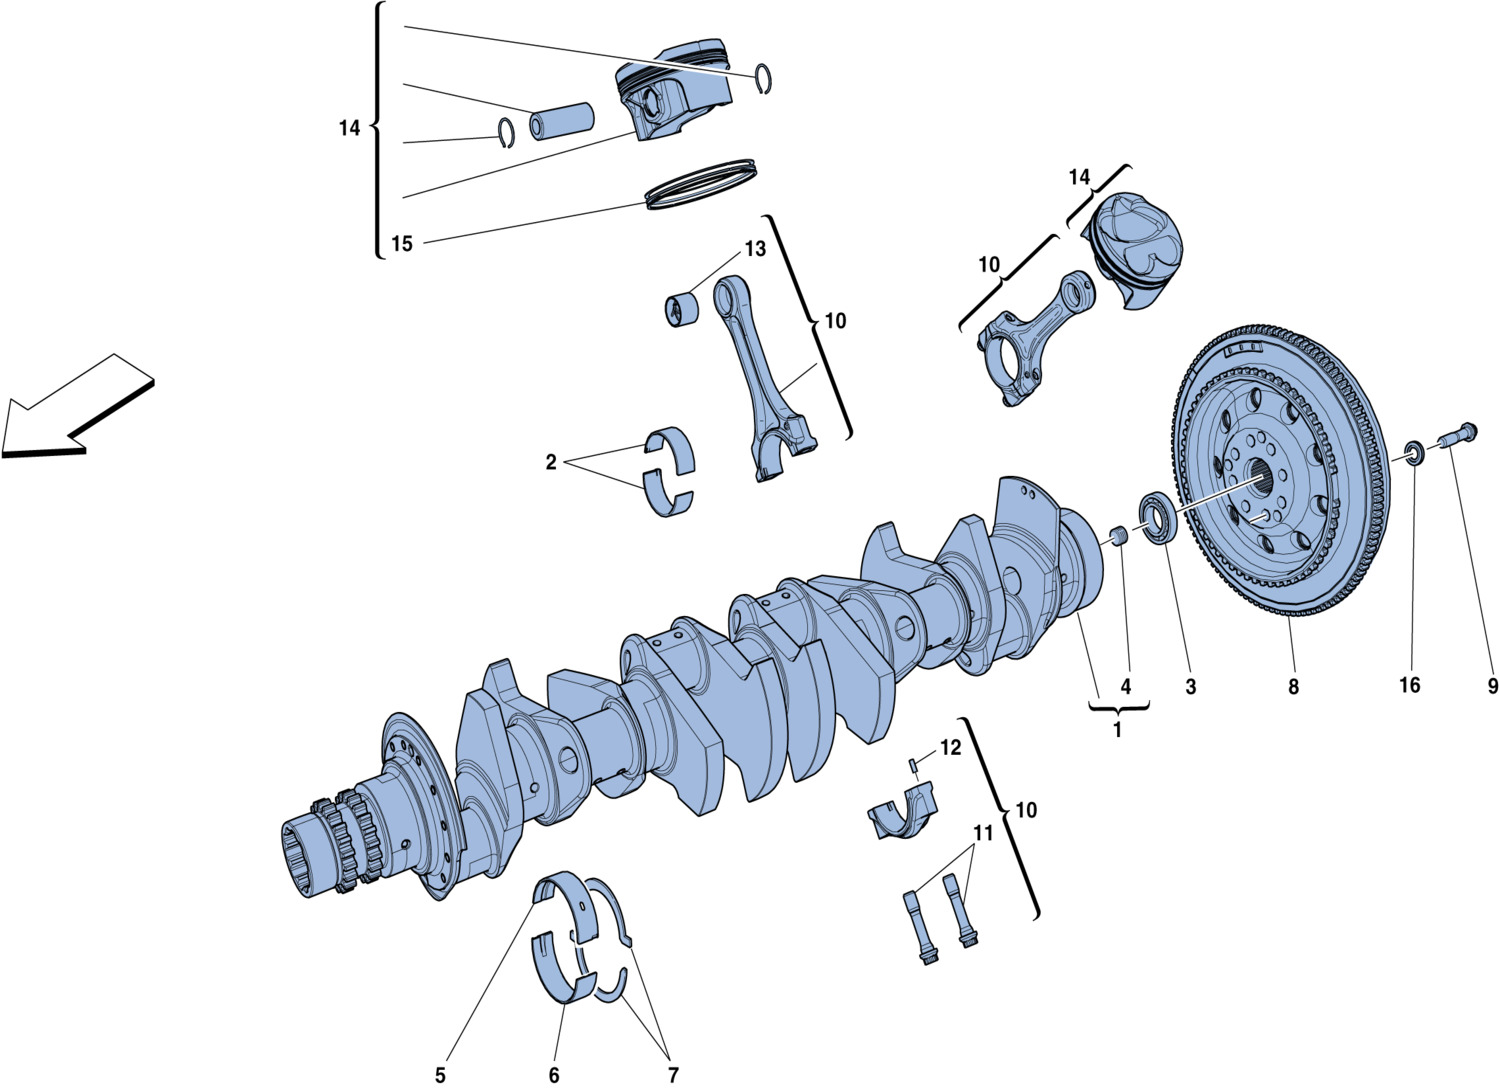 Table 2 - Crankshaft - Connecting Rods And Pistons